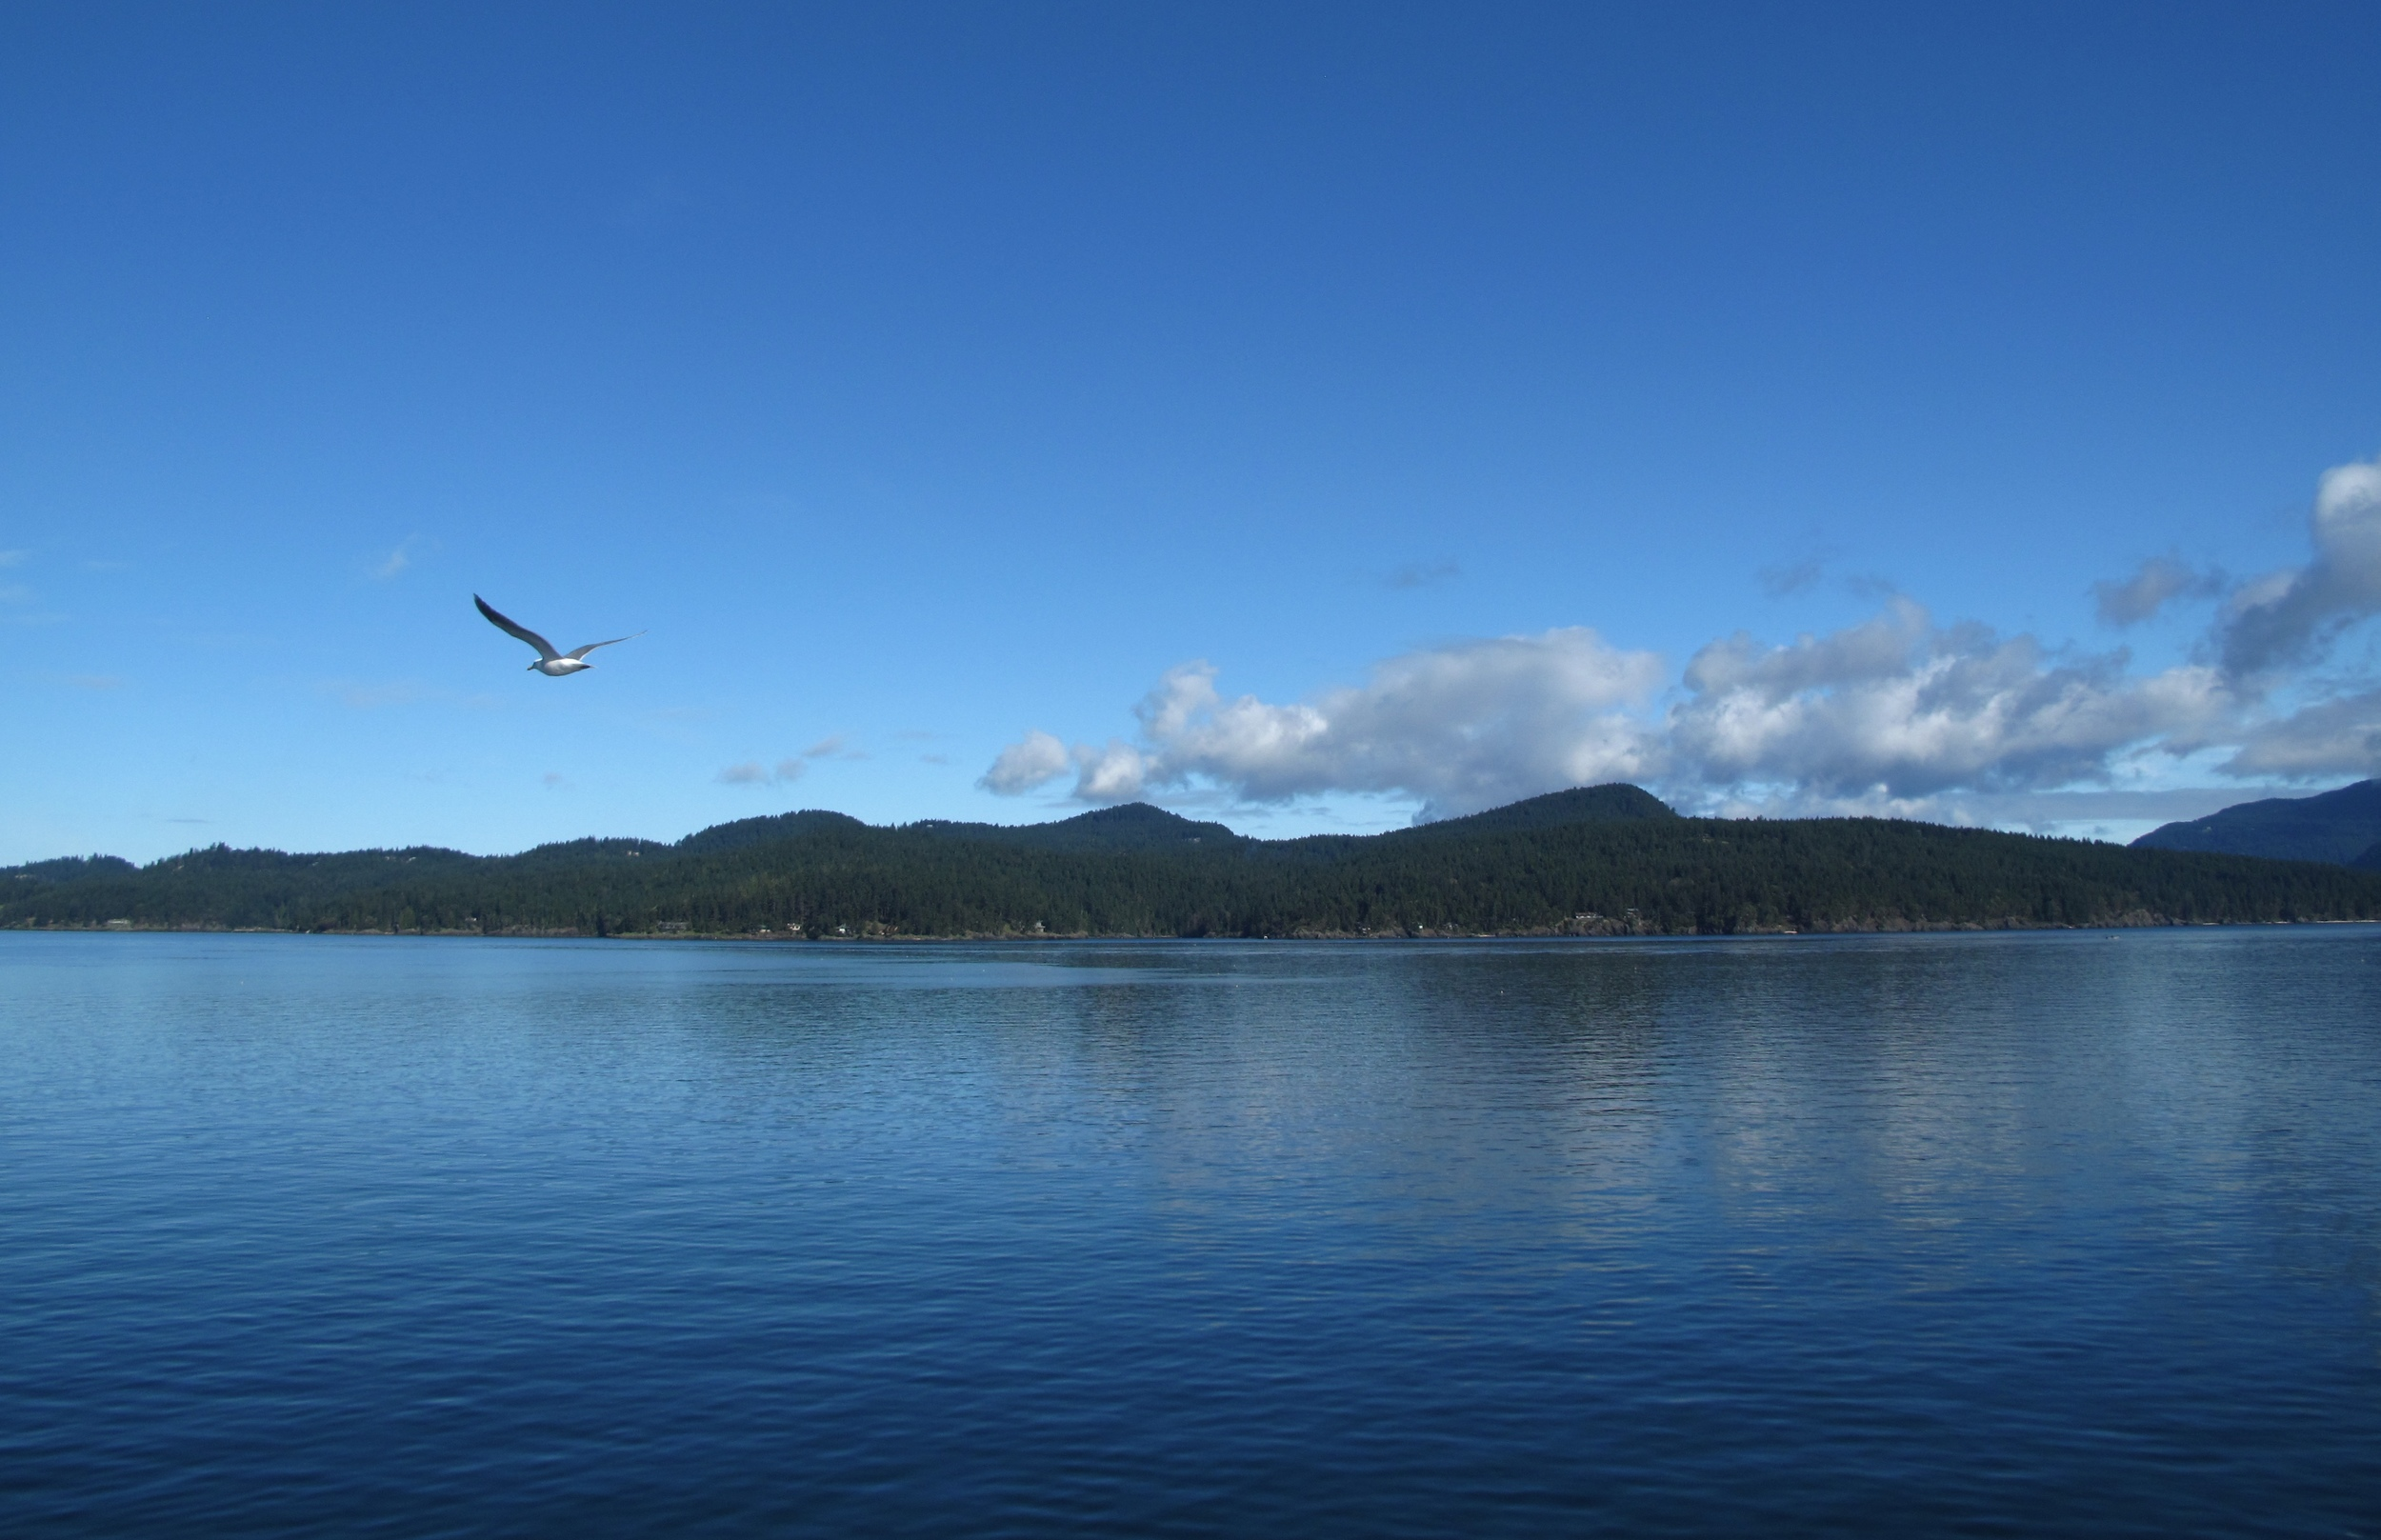 Bird flying over the sea by the San Juan islands, USA.